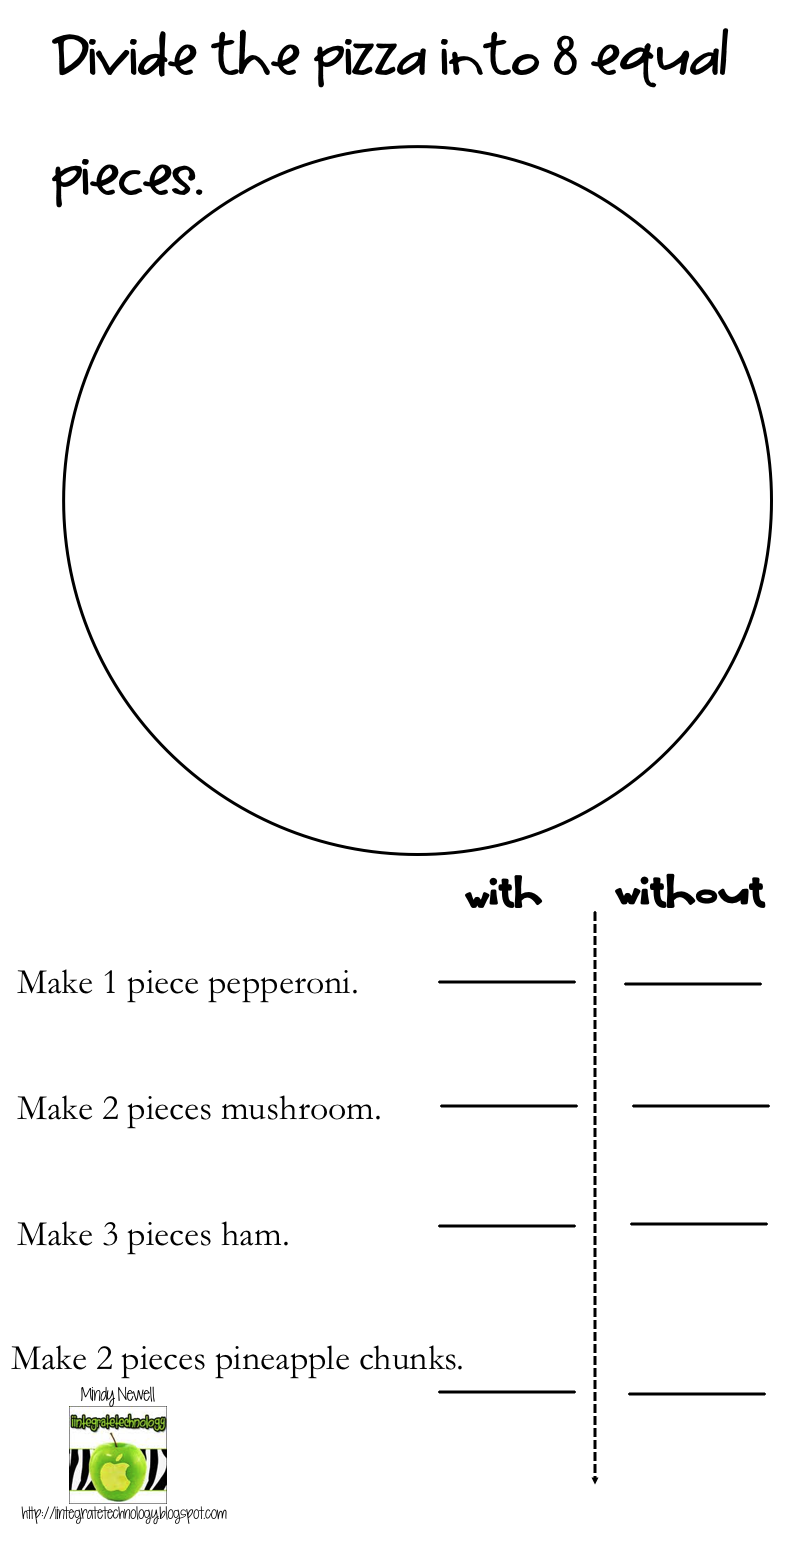 Worksheet Pizza Fraction Worksheets Mikyu Free Worksheet – Pizza Fractions Worksheet